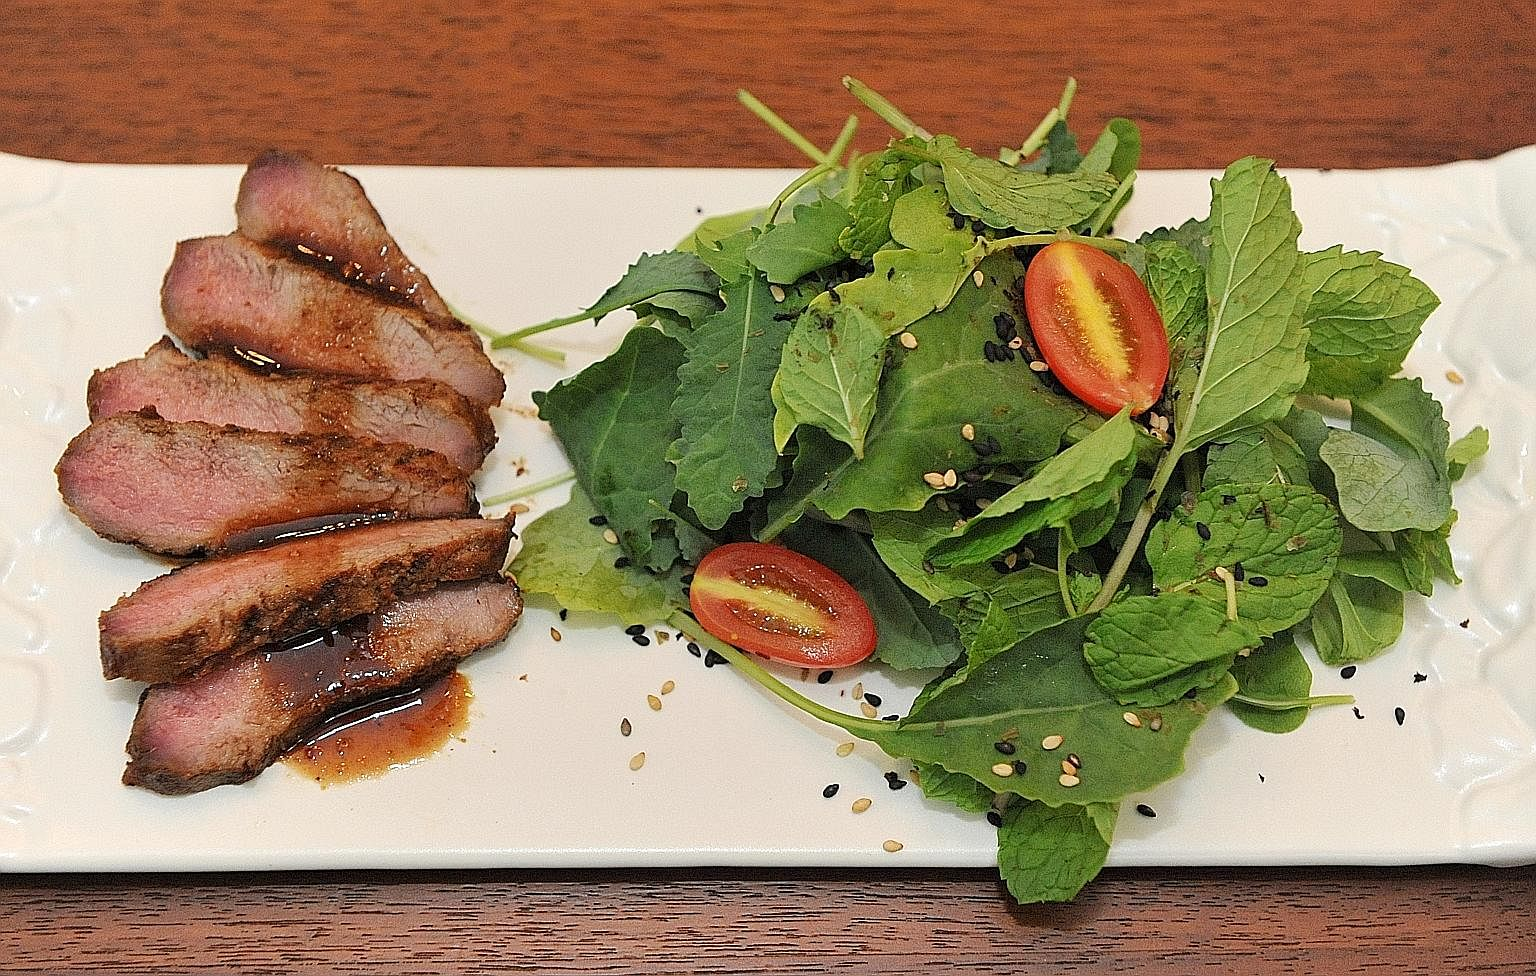 The grilled meat is served with bitter salad leaves to balance out the sweetness of the meat.